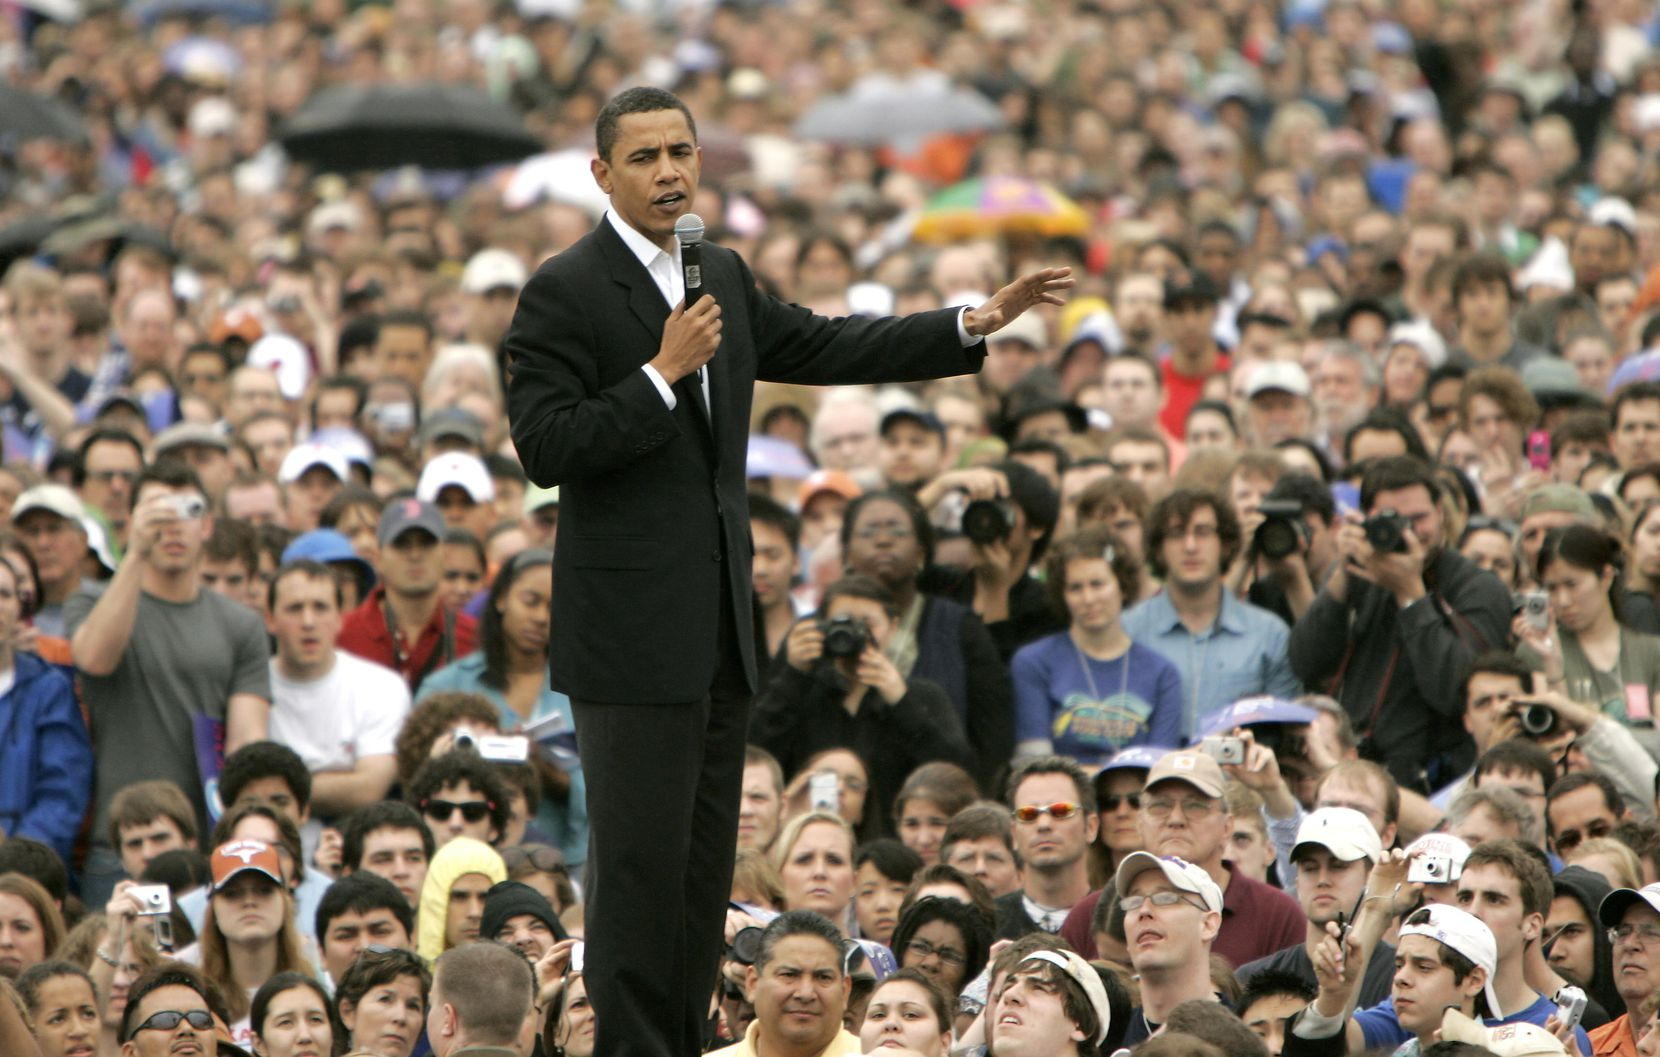 Then-Sen. Barack Obama held the first Texas rally of his 2008 presidential in front of thousands of supporters at Auditorium Shores in Austin on Feb. 22, 2007.